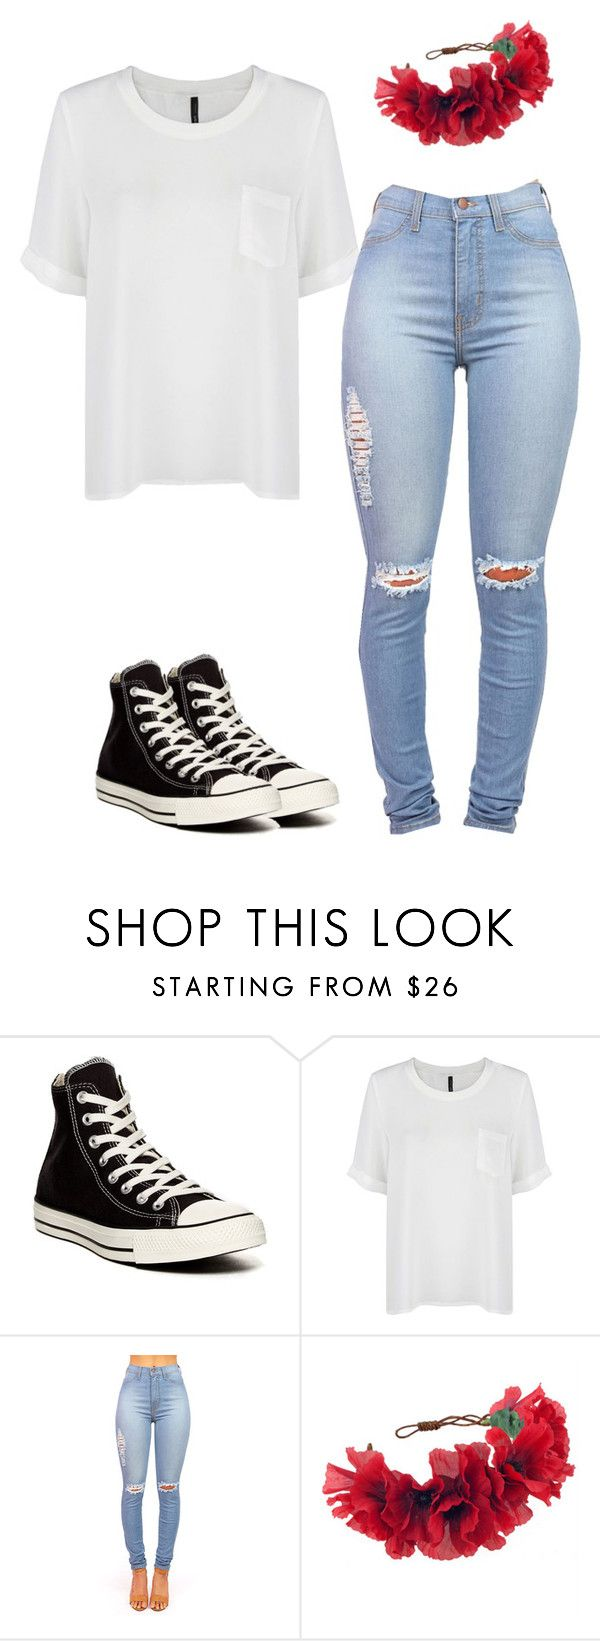 """""""Untitled #2"""" by its-kcp ❤ liked on Polyvore featuring Converse, MANGO and Rock 'N Rose"""